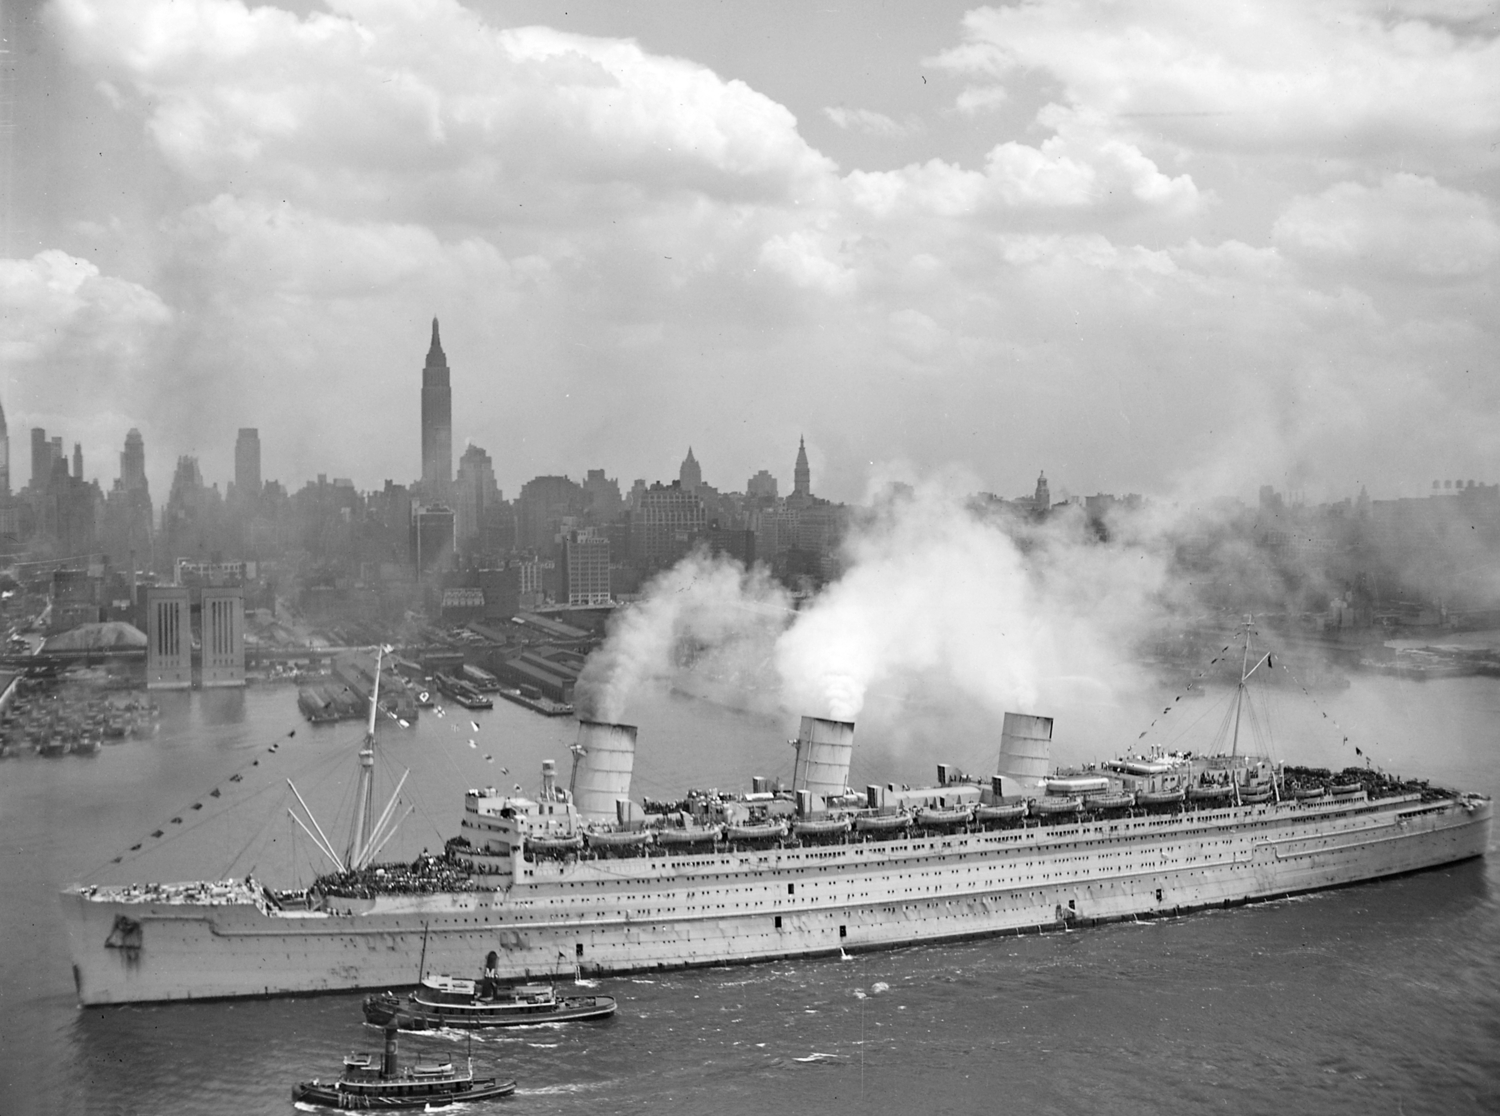 RMS Queen Mary 20 Jun 1945